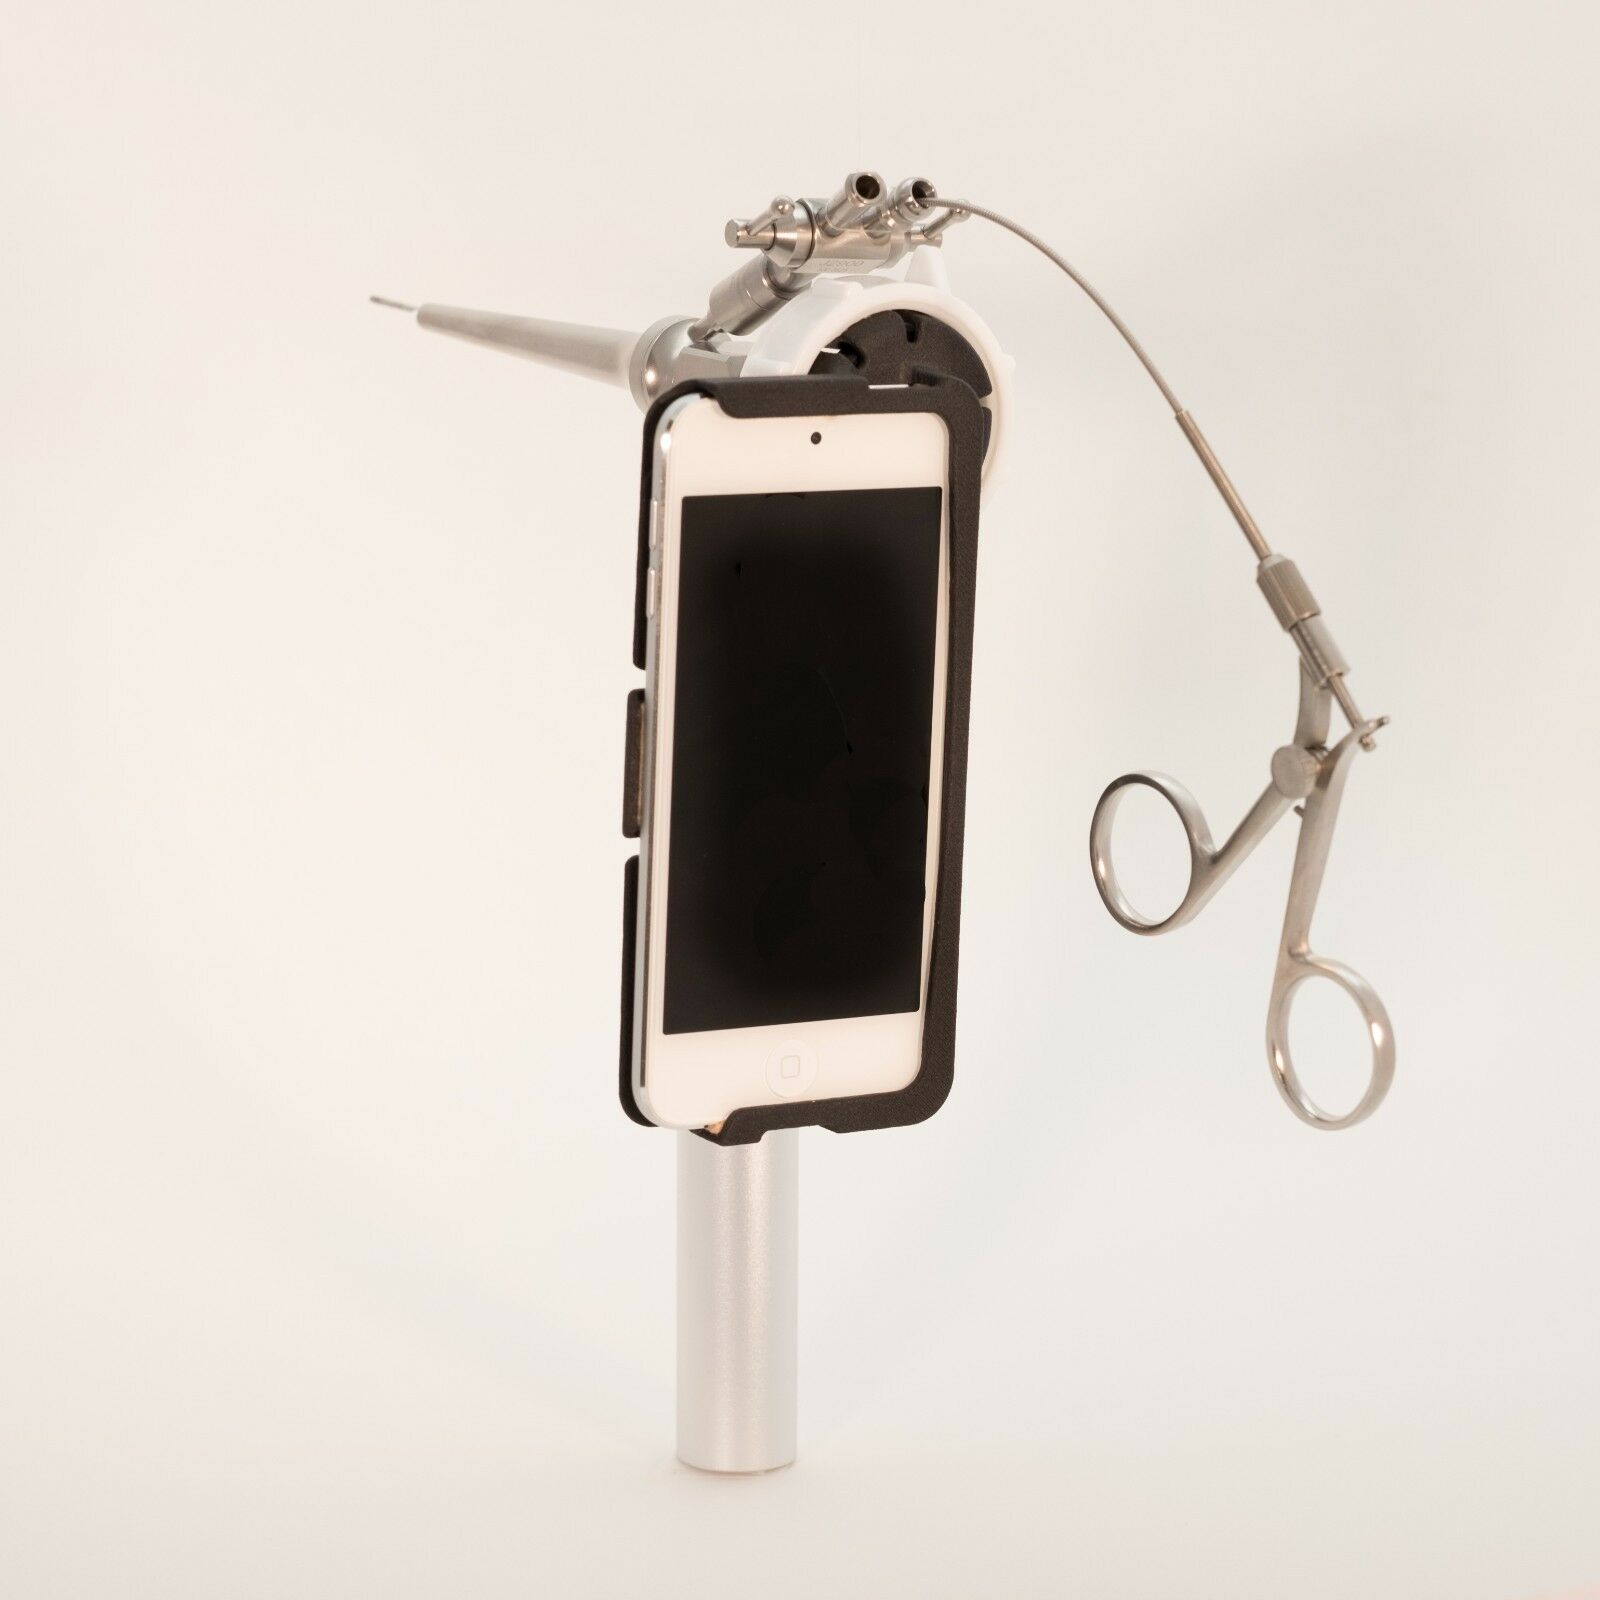 Video Otoscope for iPhone X adaptor for Endoscope video & rh